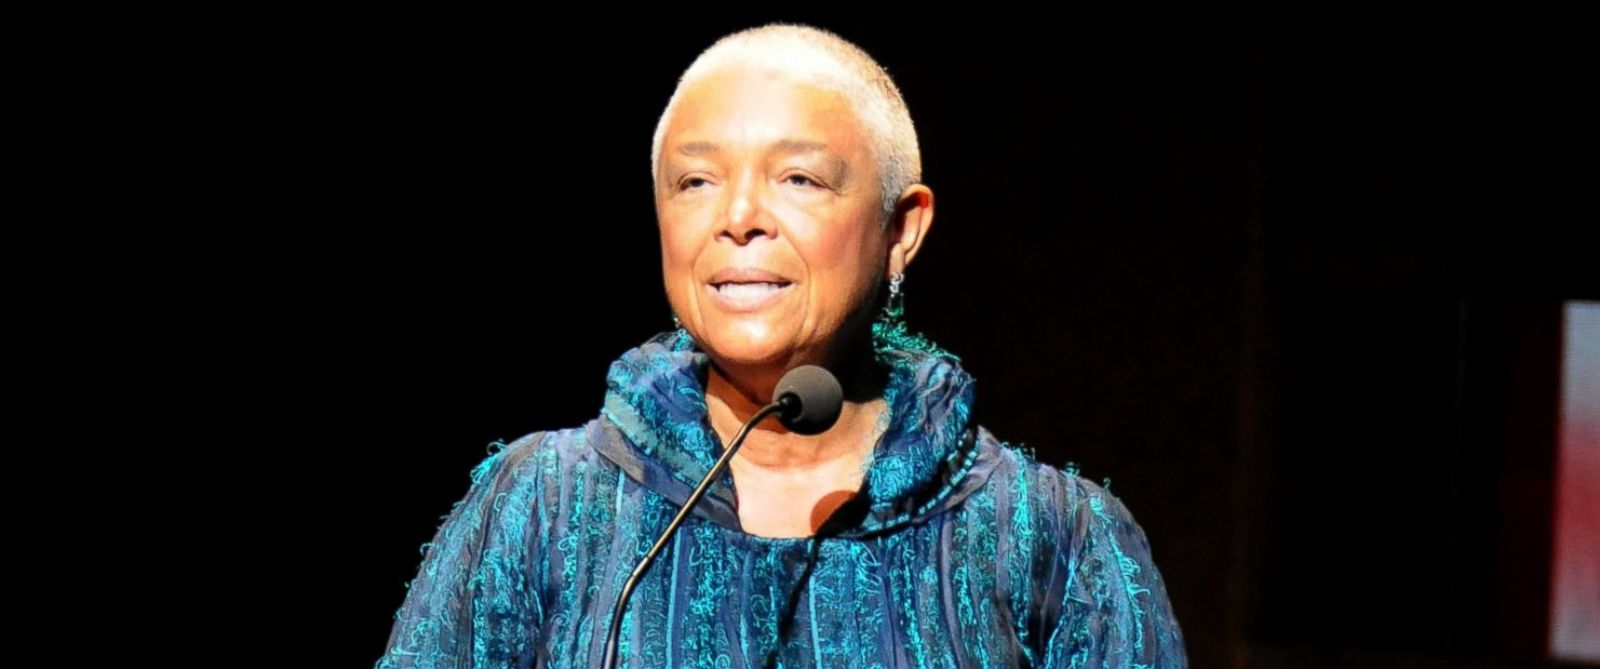 PHOTO: Camille Cosby attends the Apollo Theaters 75th Anniversary Gala at The Apollo Theater, June 8, 2009 in New York City.